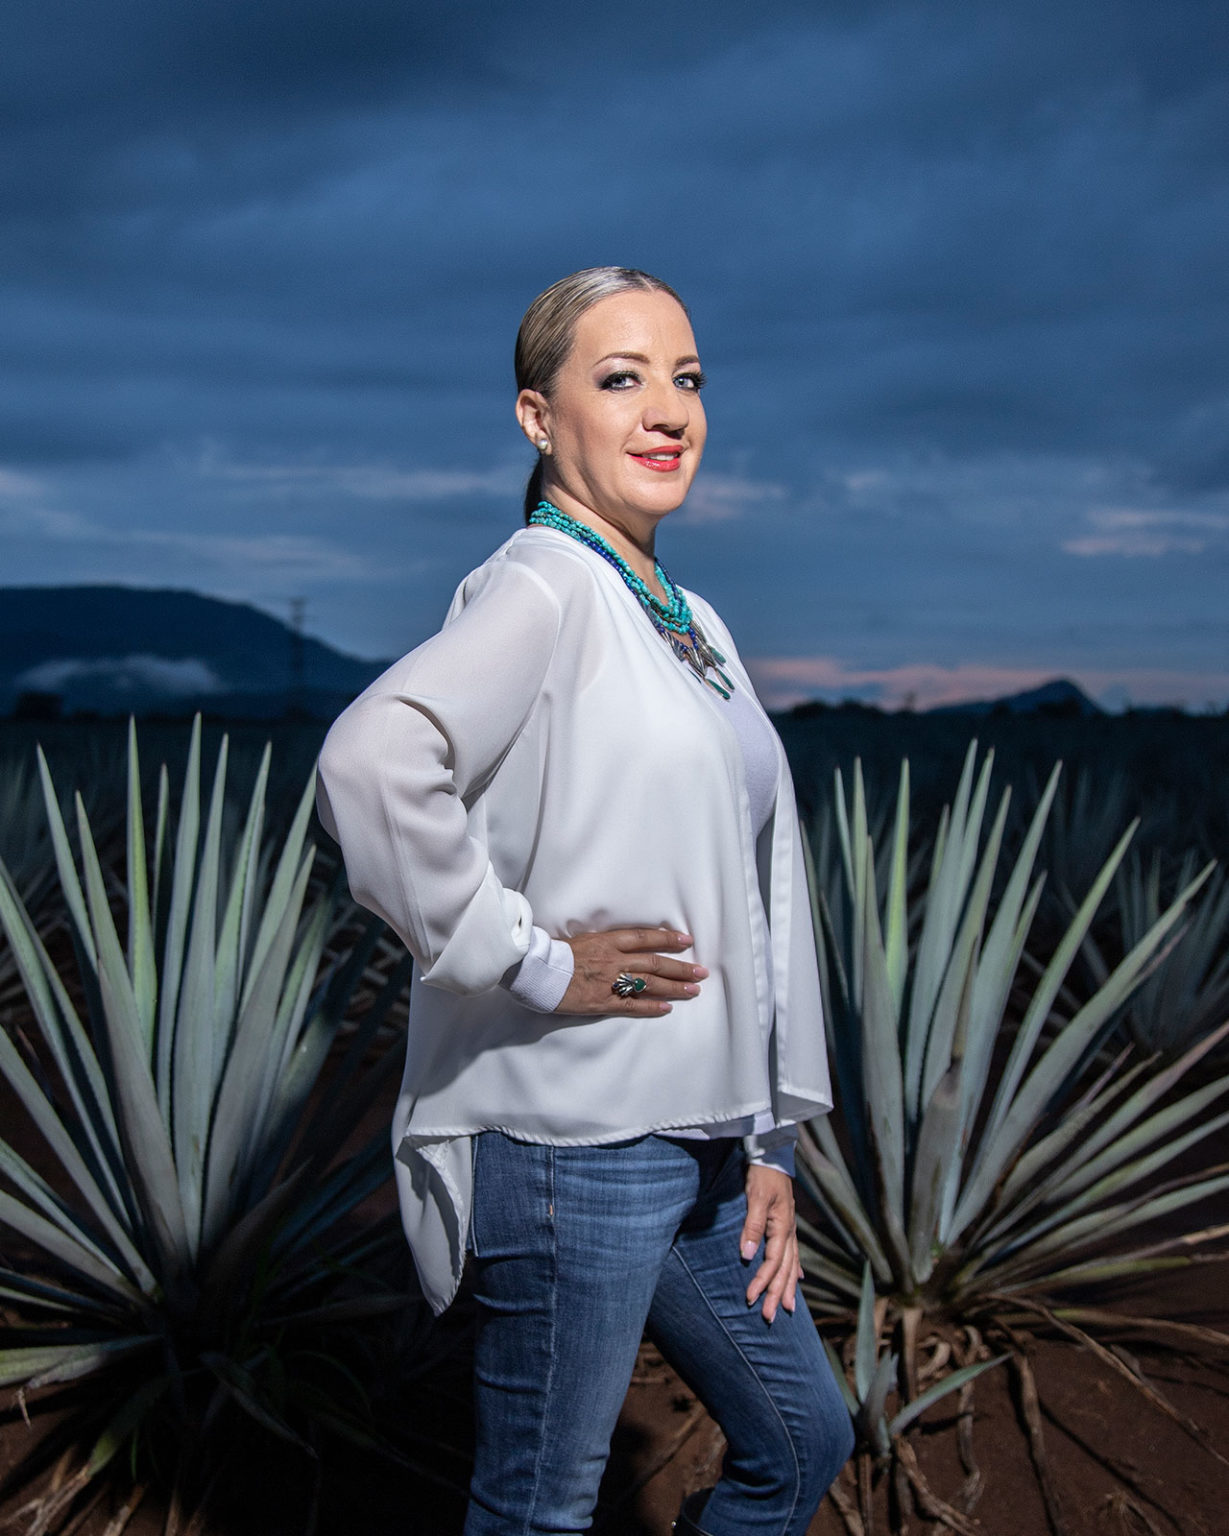 """CNITによるテキーラ専門家(Conocedora del Tequila)の認定を受けた、""""Universo Tequila""""を主宰するガブリエラである。 by Forbes Mexico"""